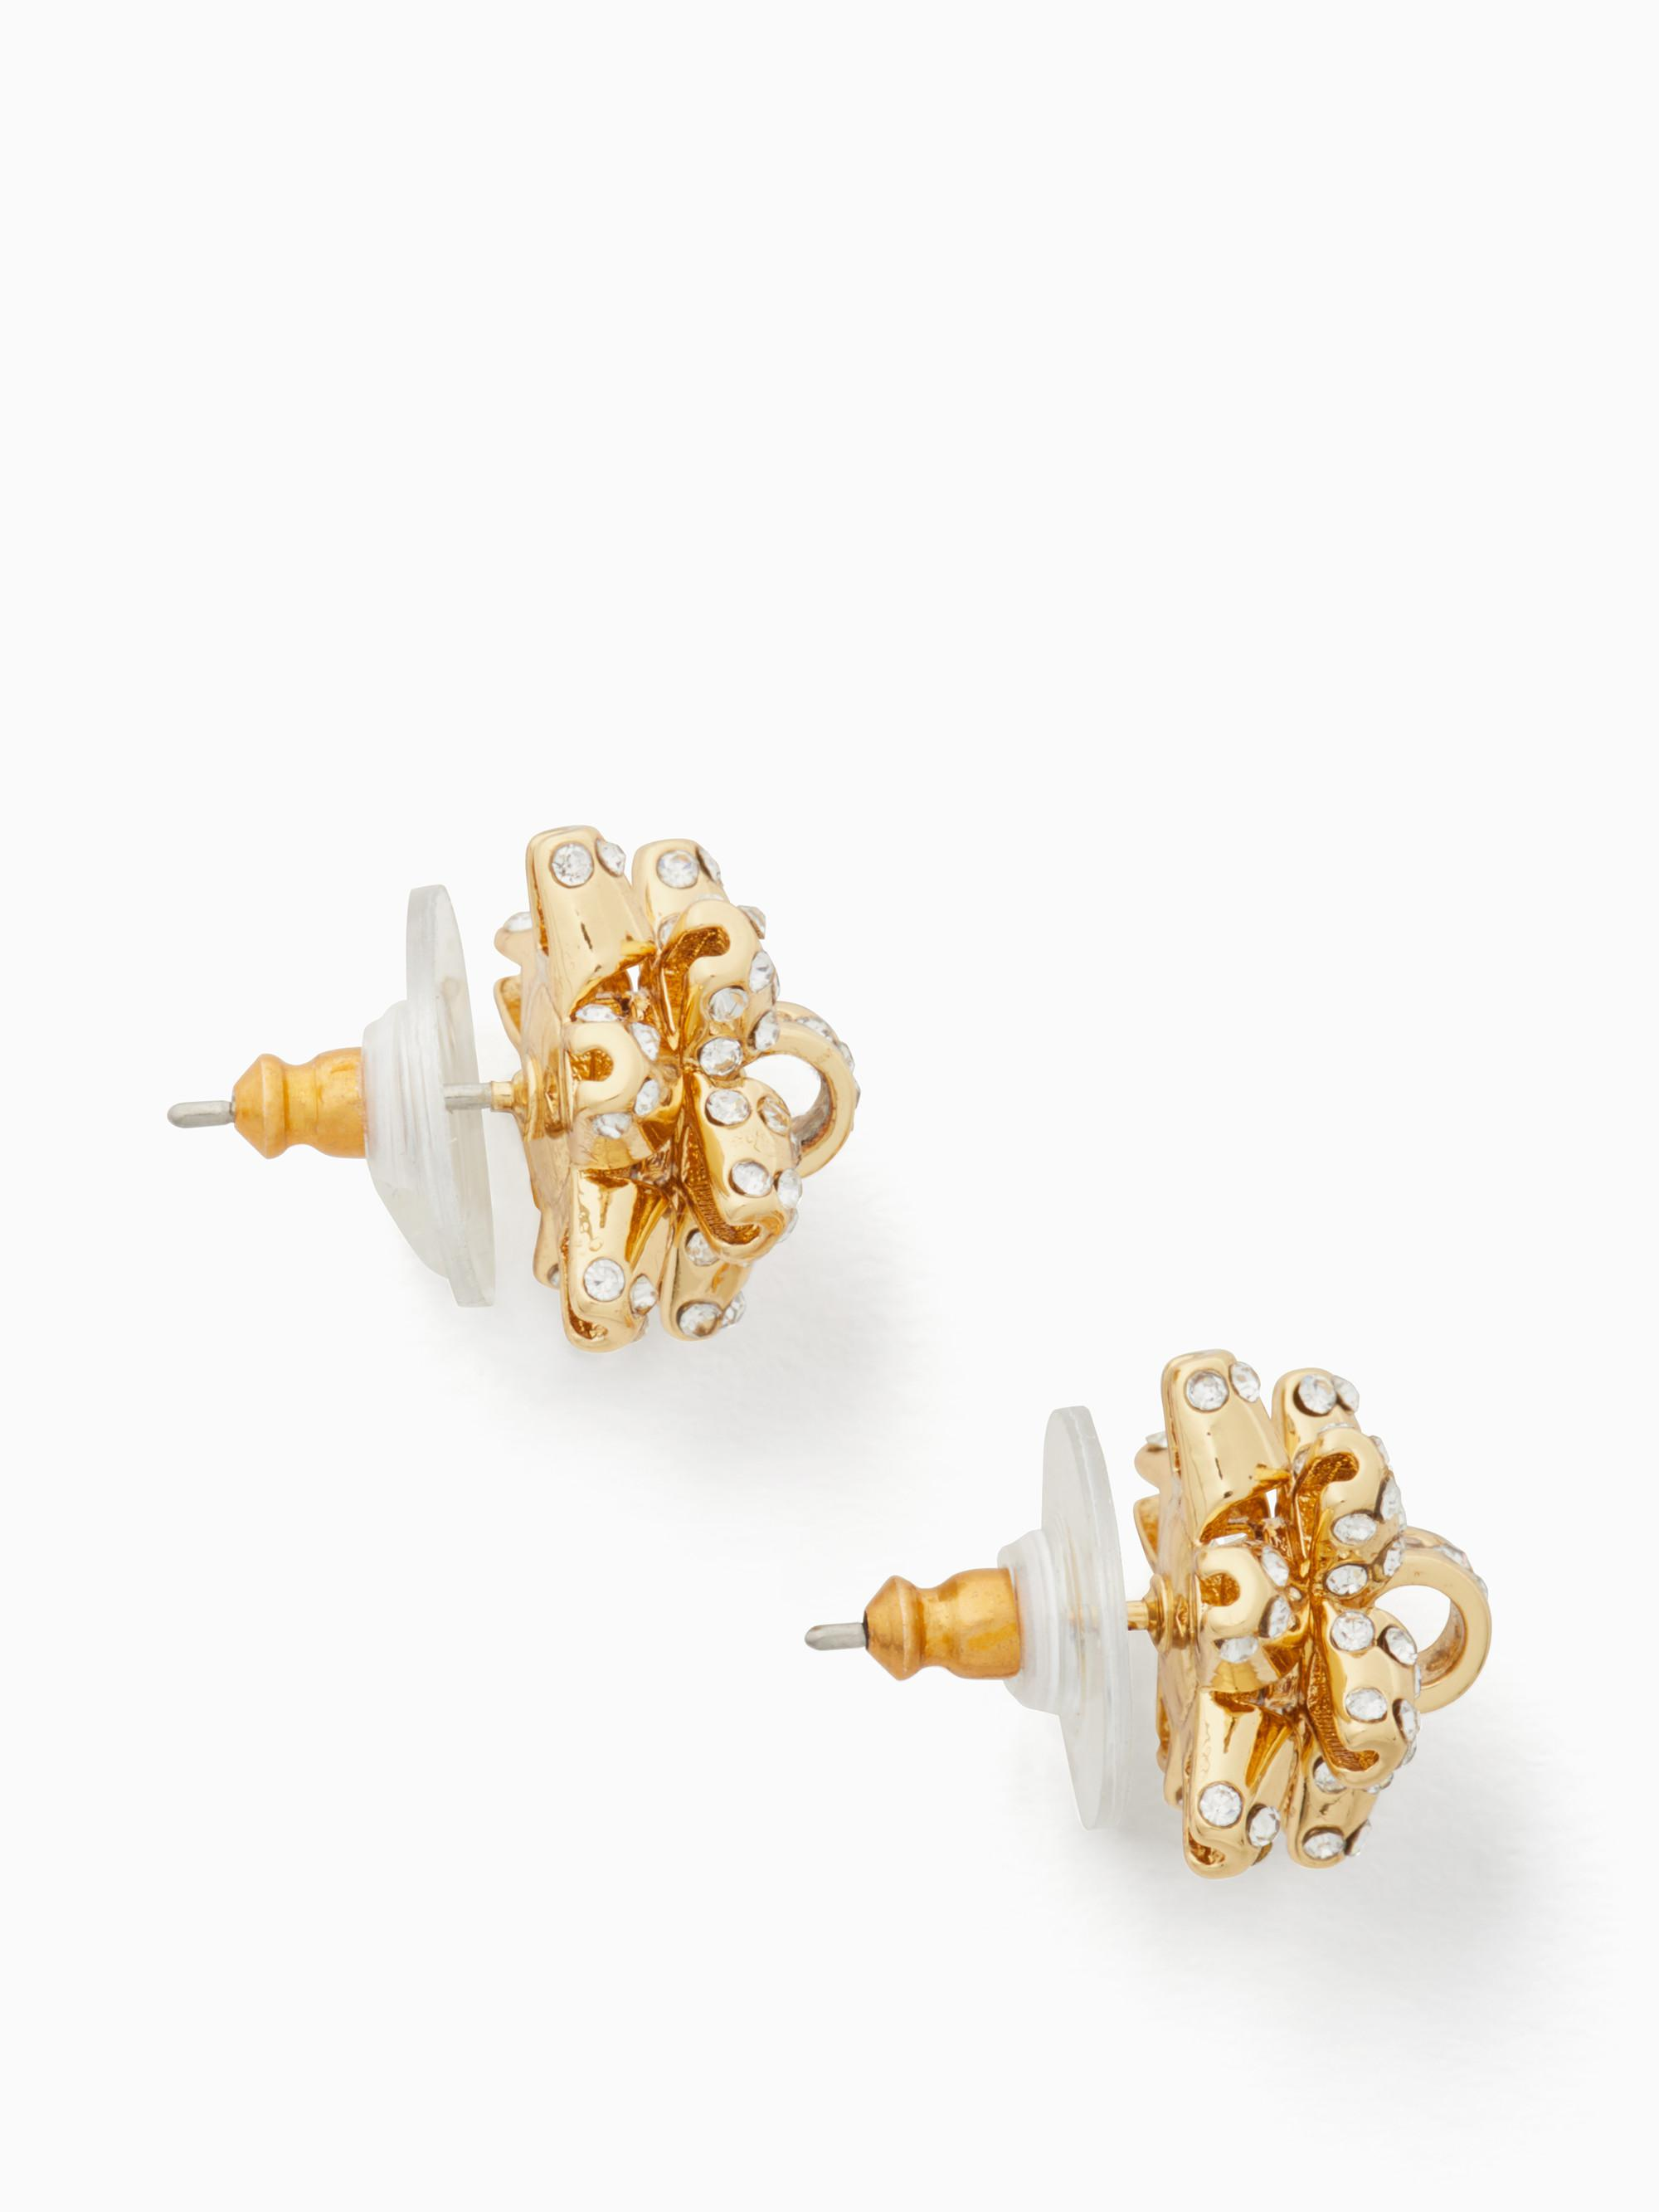 Kate Spade Bourgeois Bow Earrings   www.topsimages.com